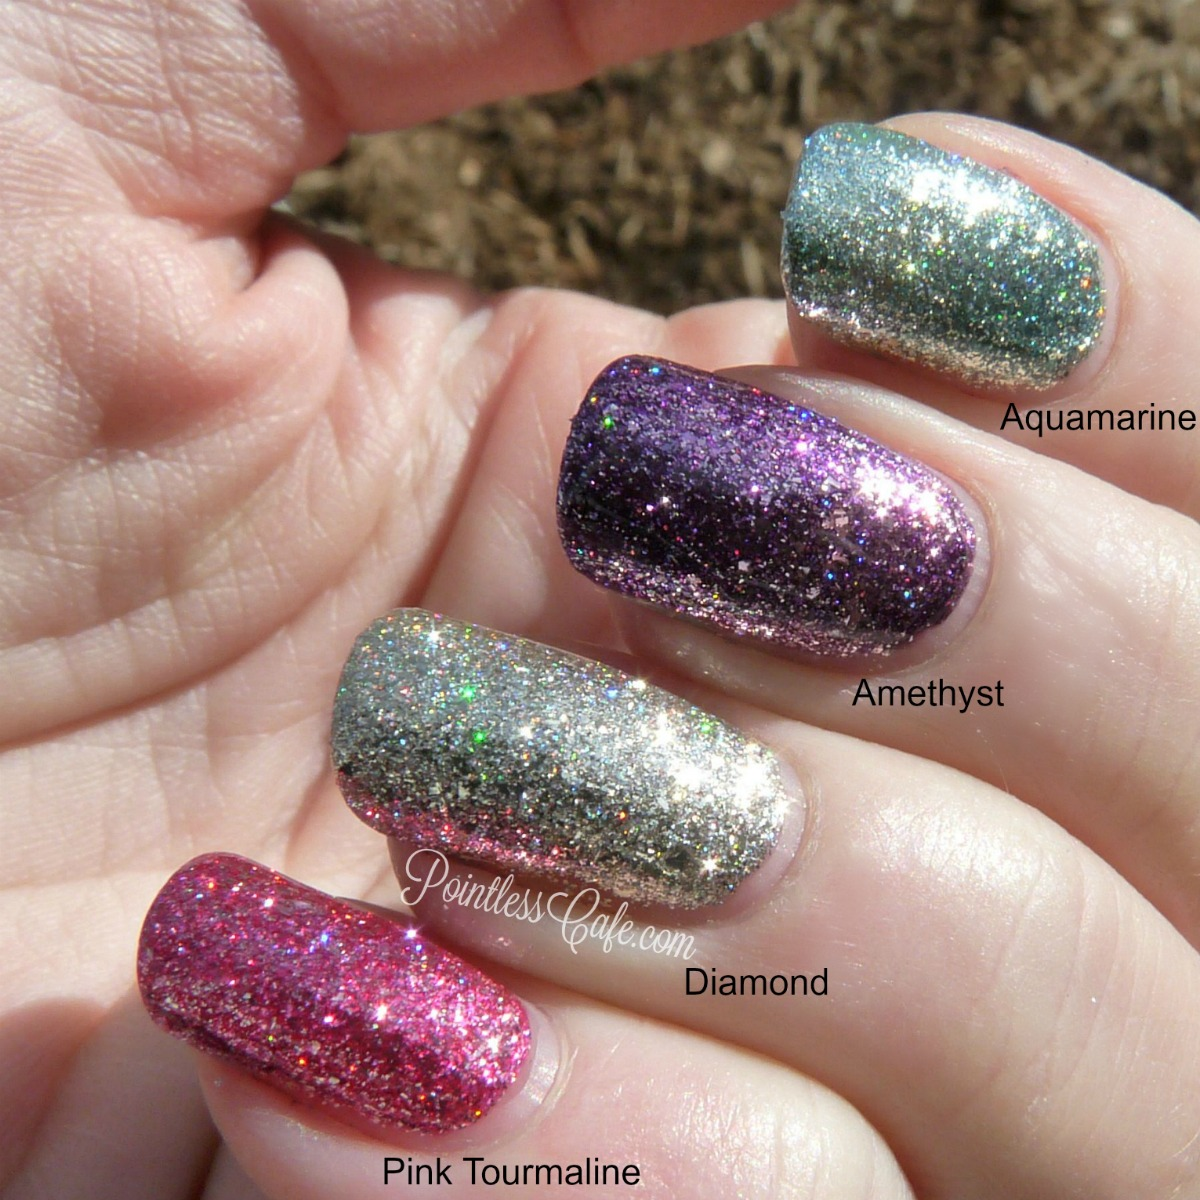 9f4295f94db76 KBShimmer: The Birthstone Collection - Swatches and Review ...